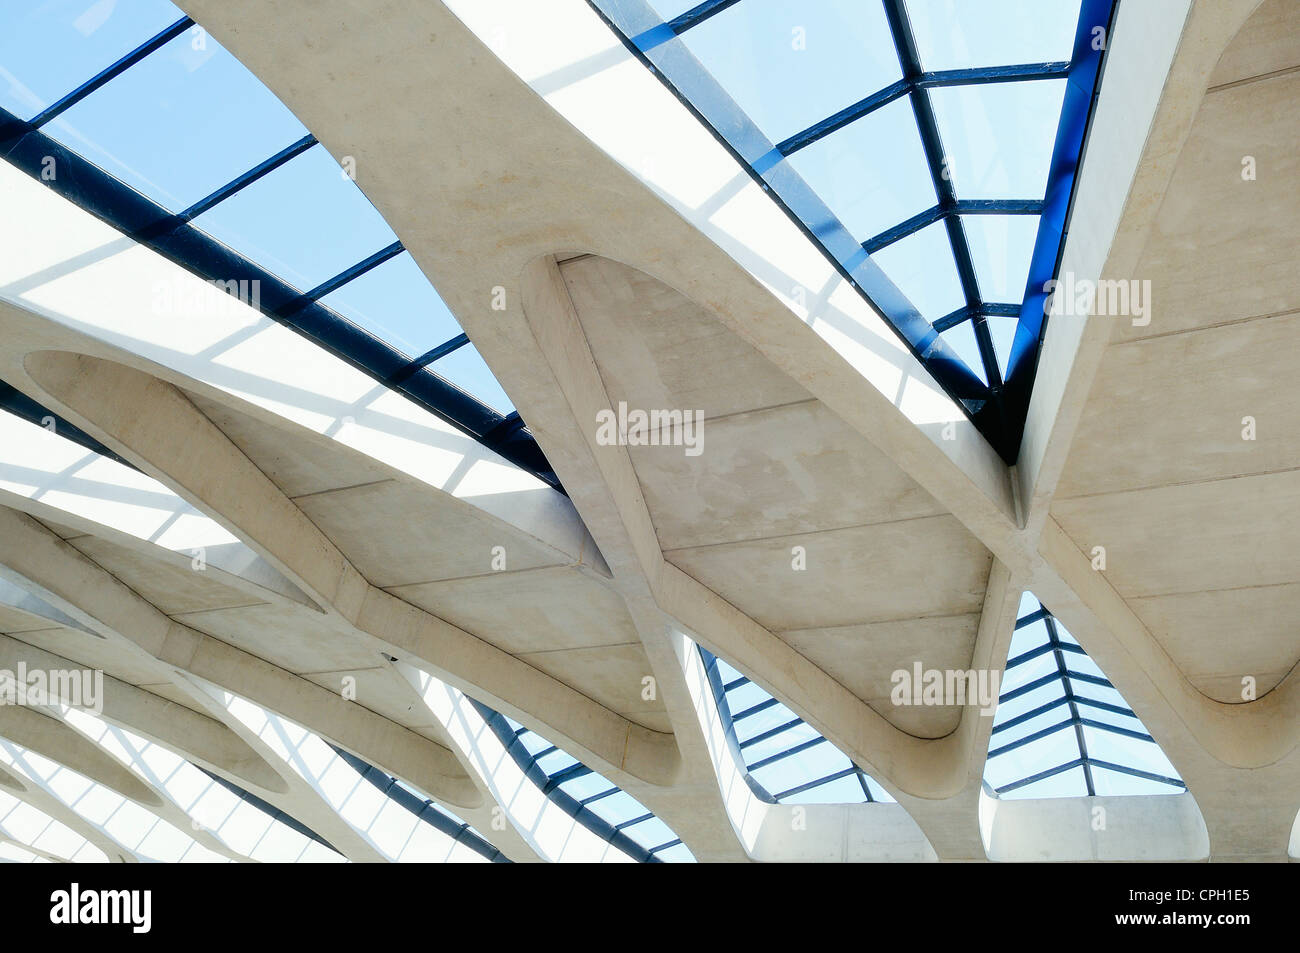 Lyon St Exupery Modern Architectural Detail Lyon St Exupery Stock Photo 48317533